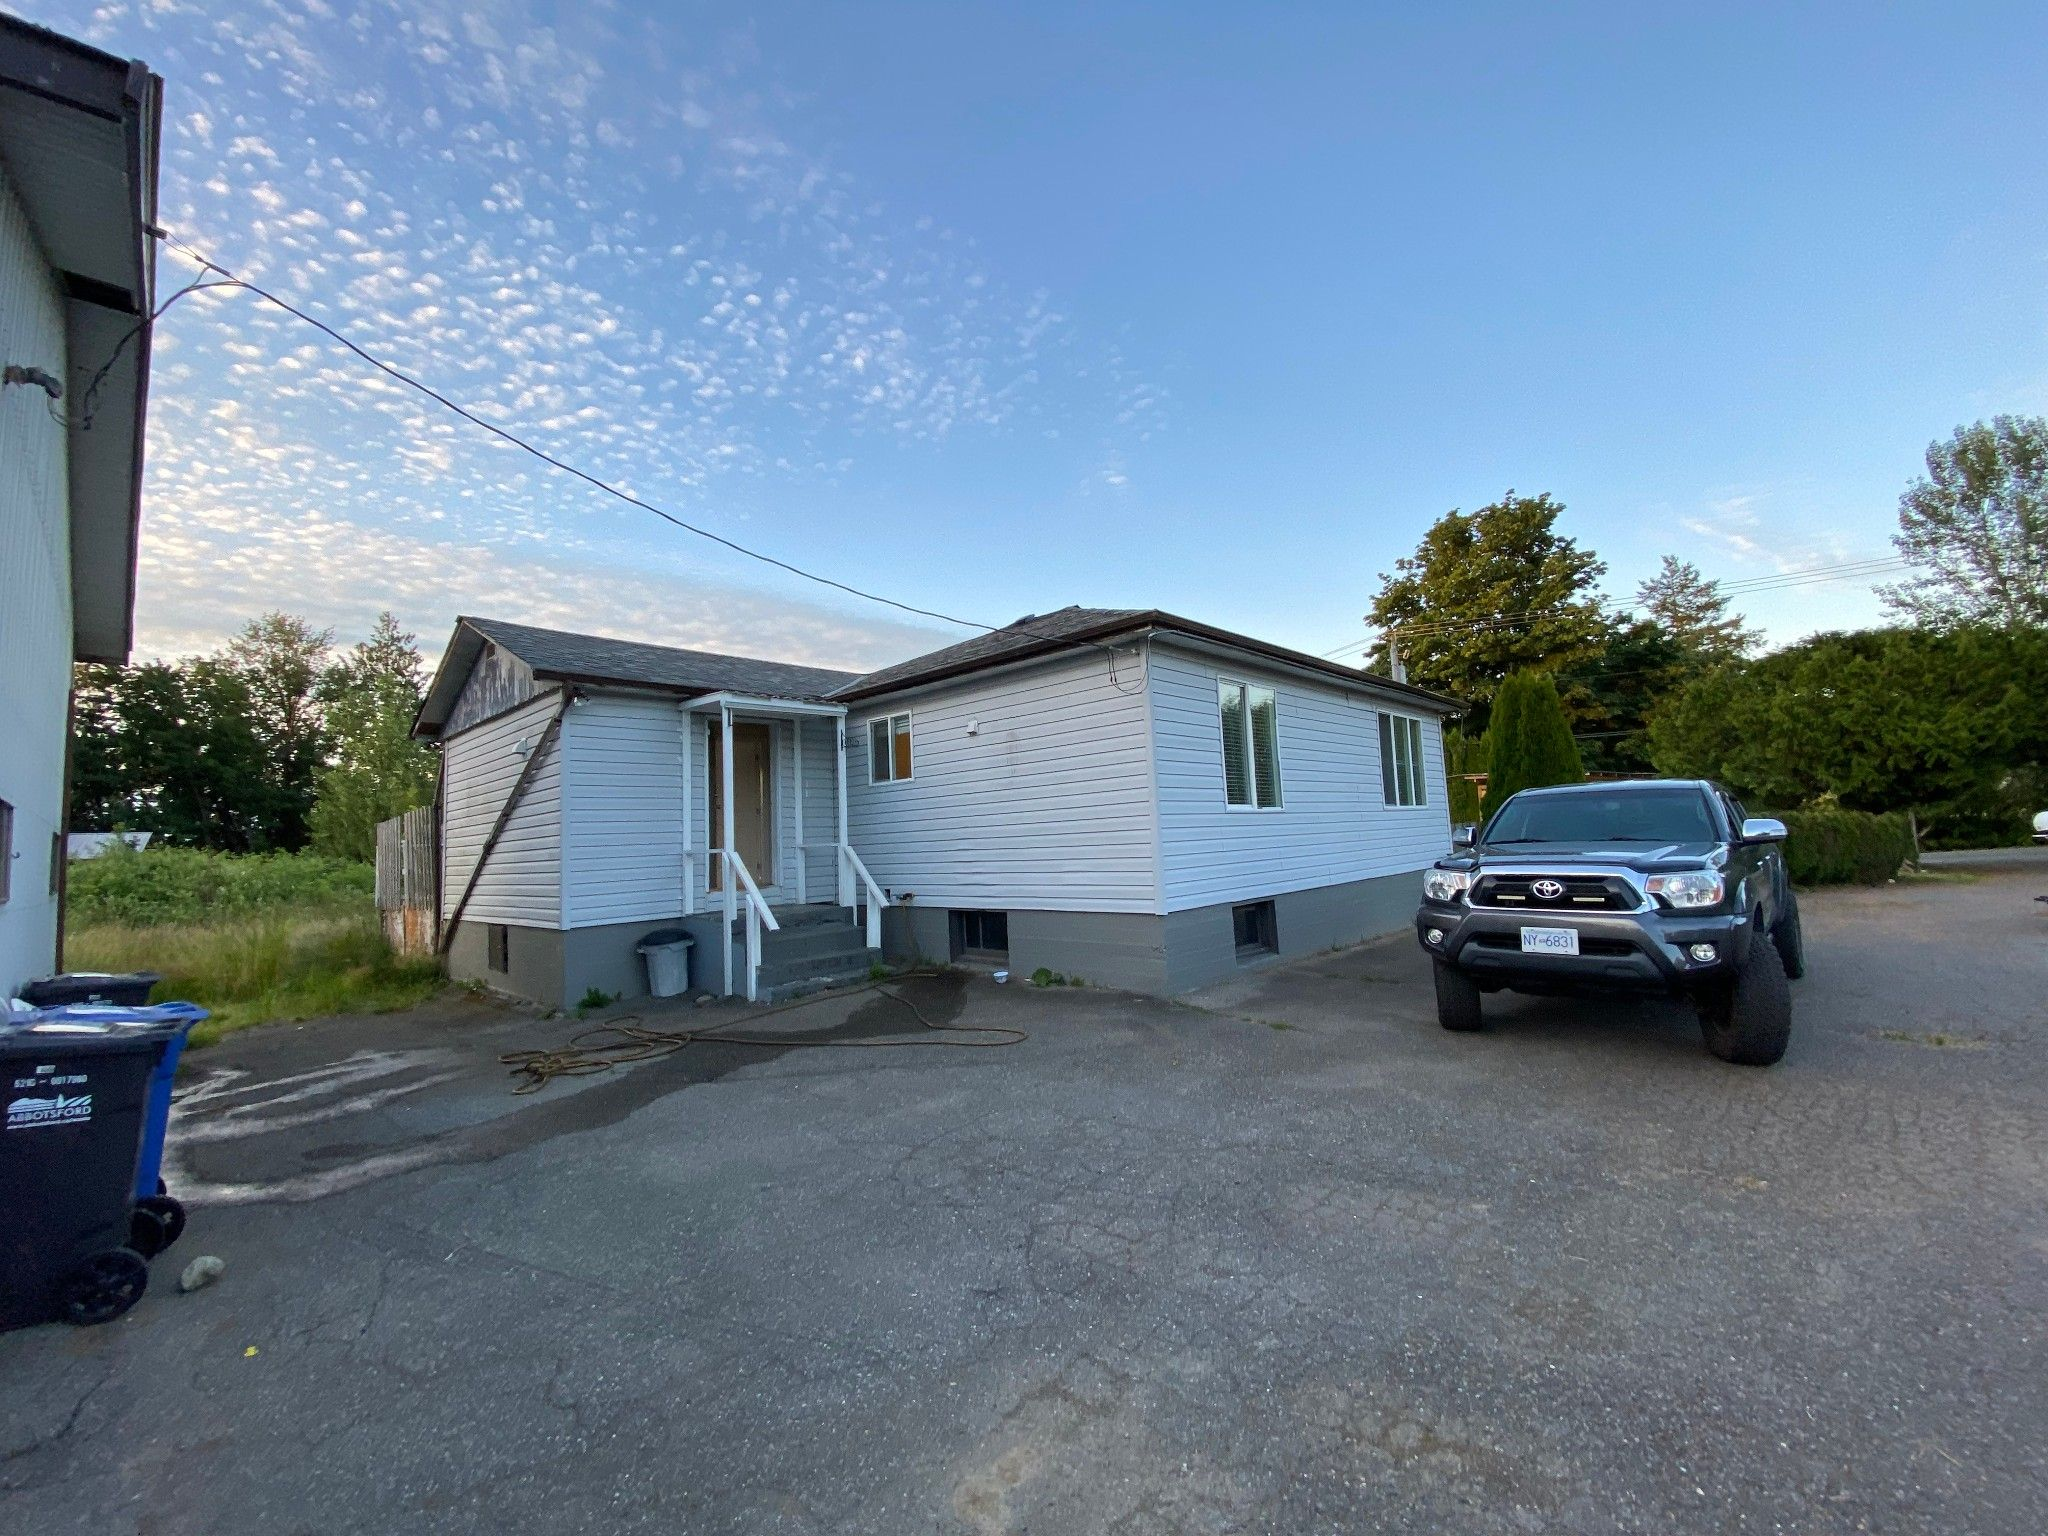 Main Photo: 4267 Seldon Rd. in Abbotsford: Central Abbotsford House for rent